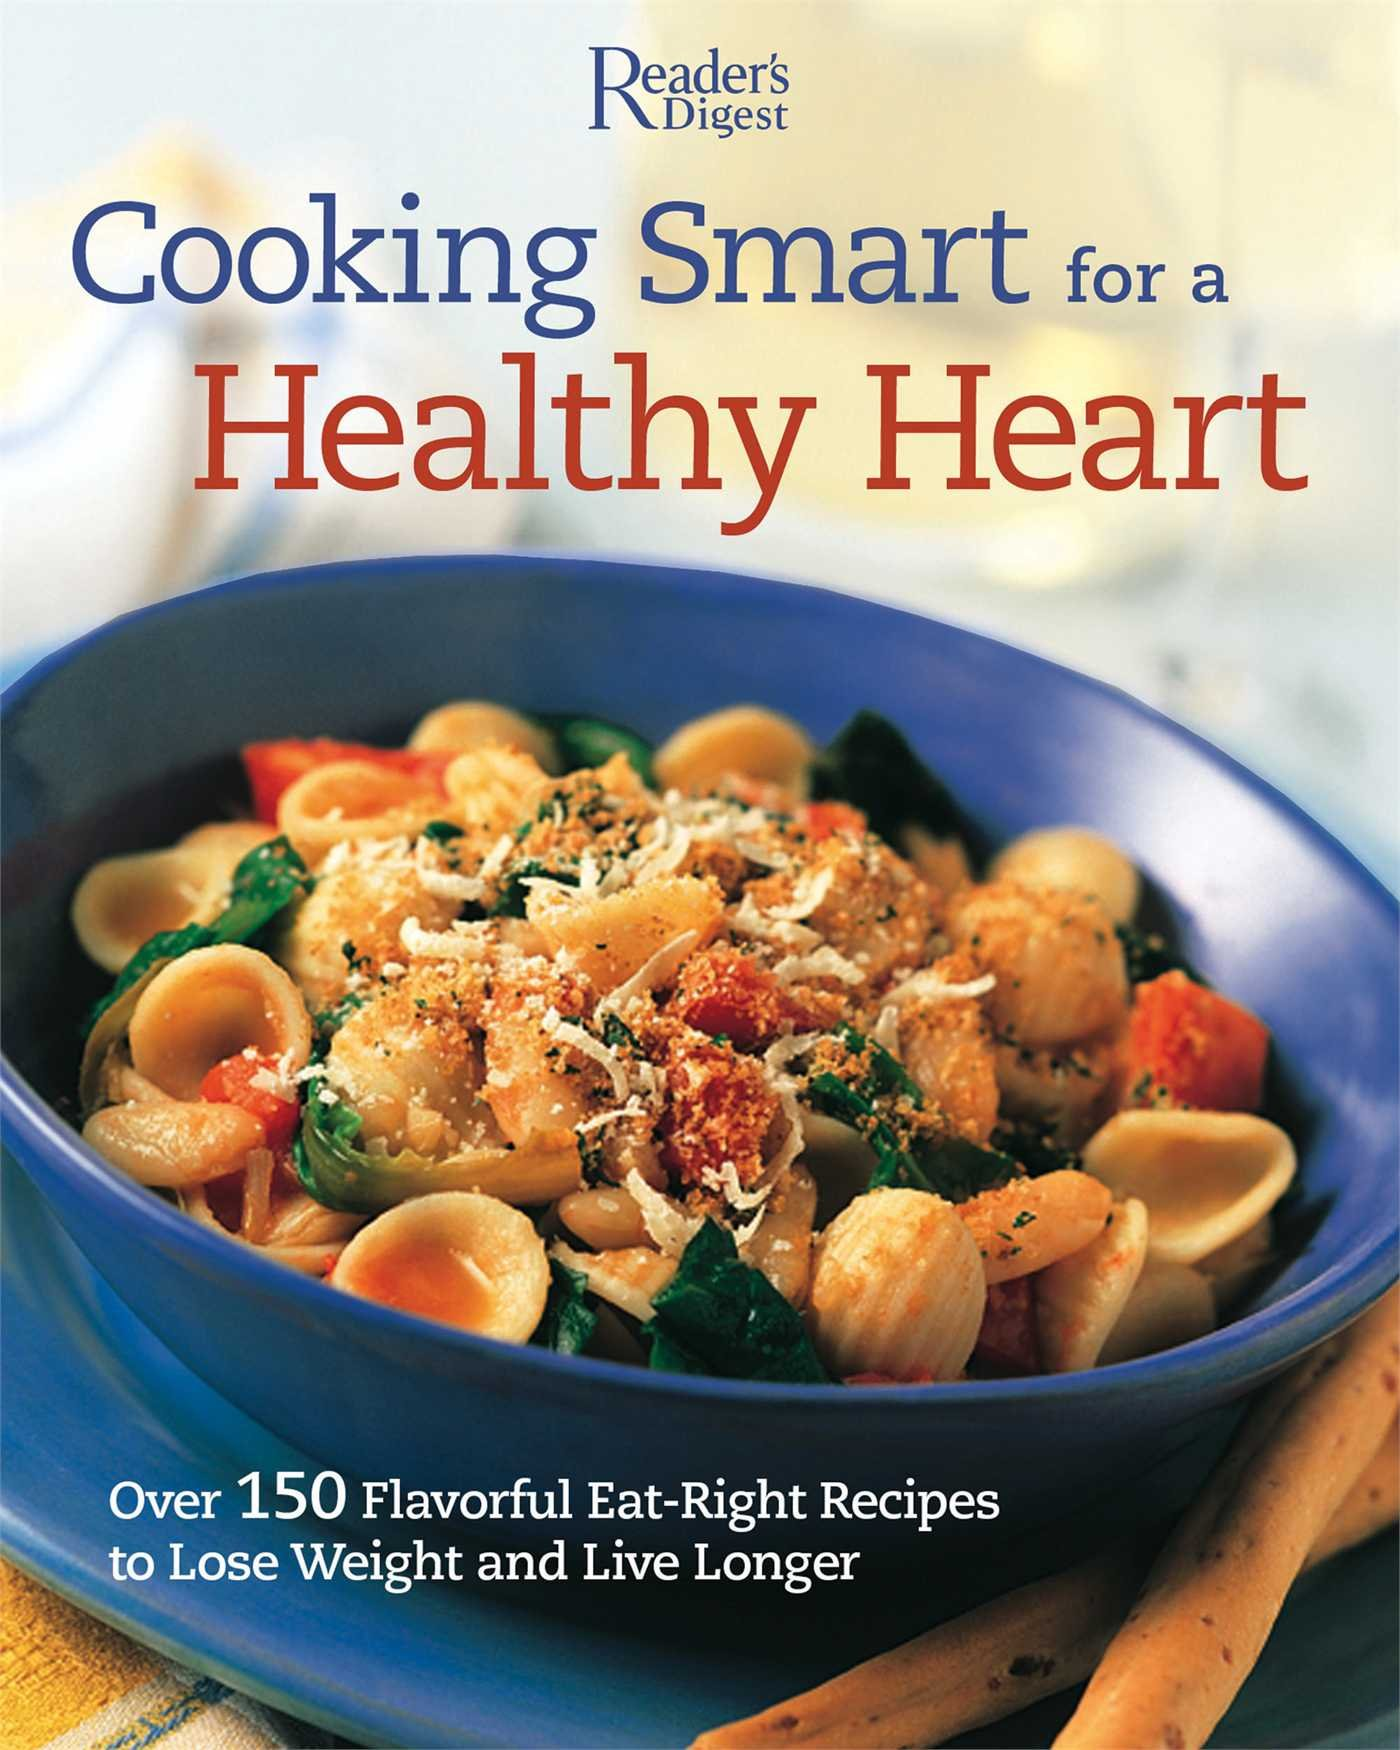 Cooking smart for a healthy heart 150 flavorful eat right recipes cooking smart for a healthy heart 150 flavorful eat right recipes to lose weight and live longer editors of readers digest 9780762109968 amazon forumfinder Image collections